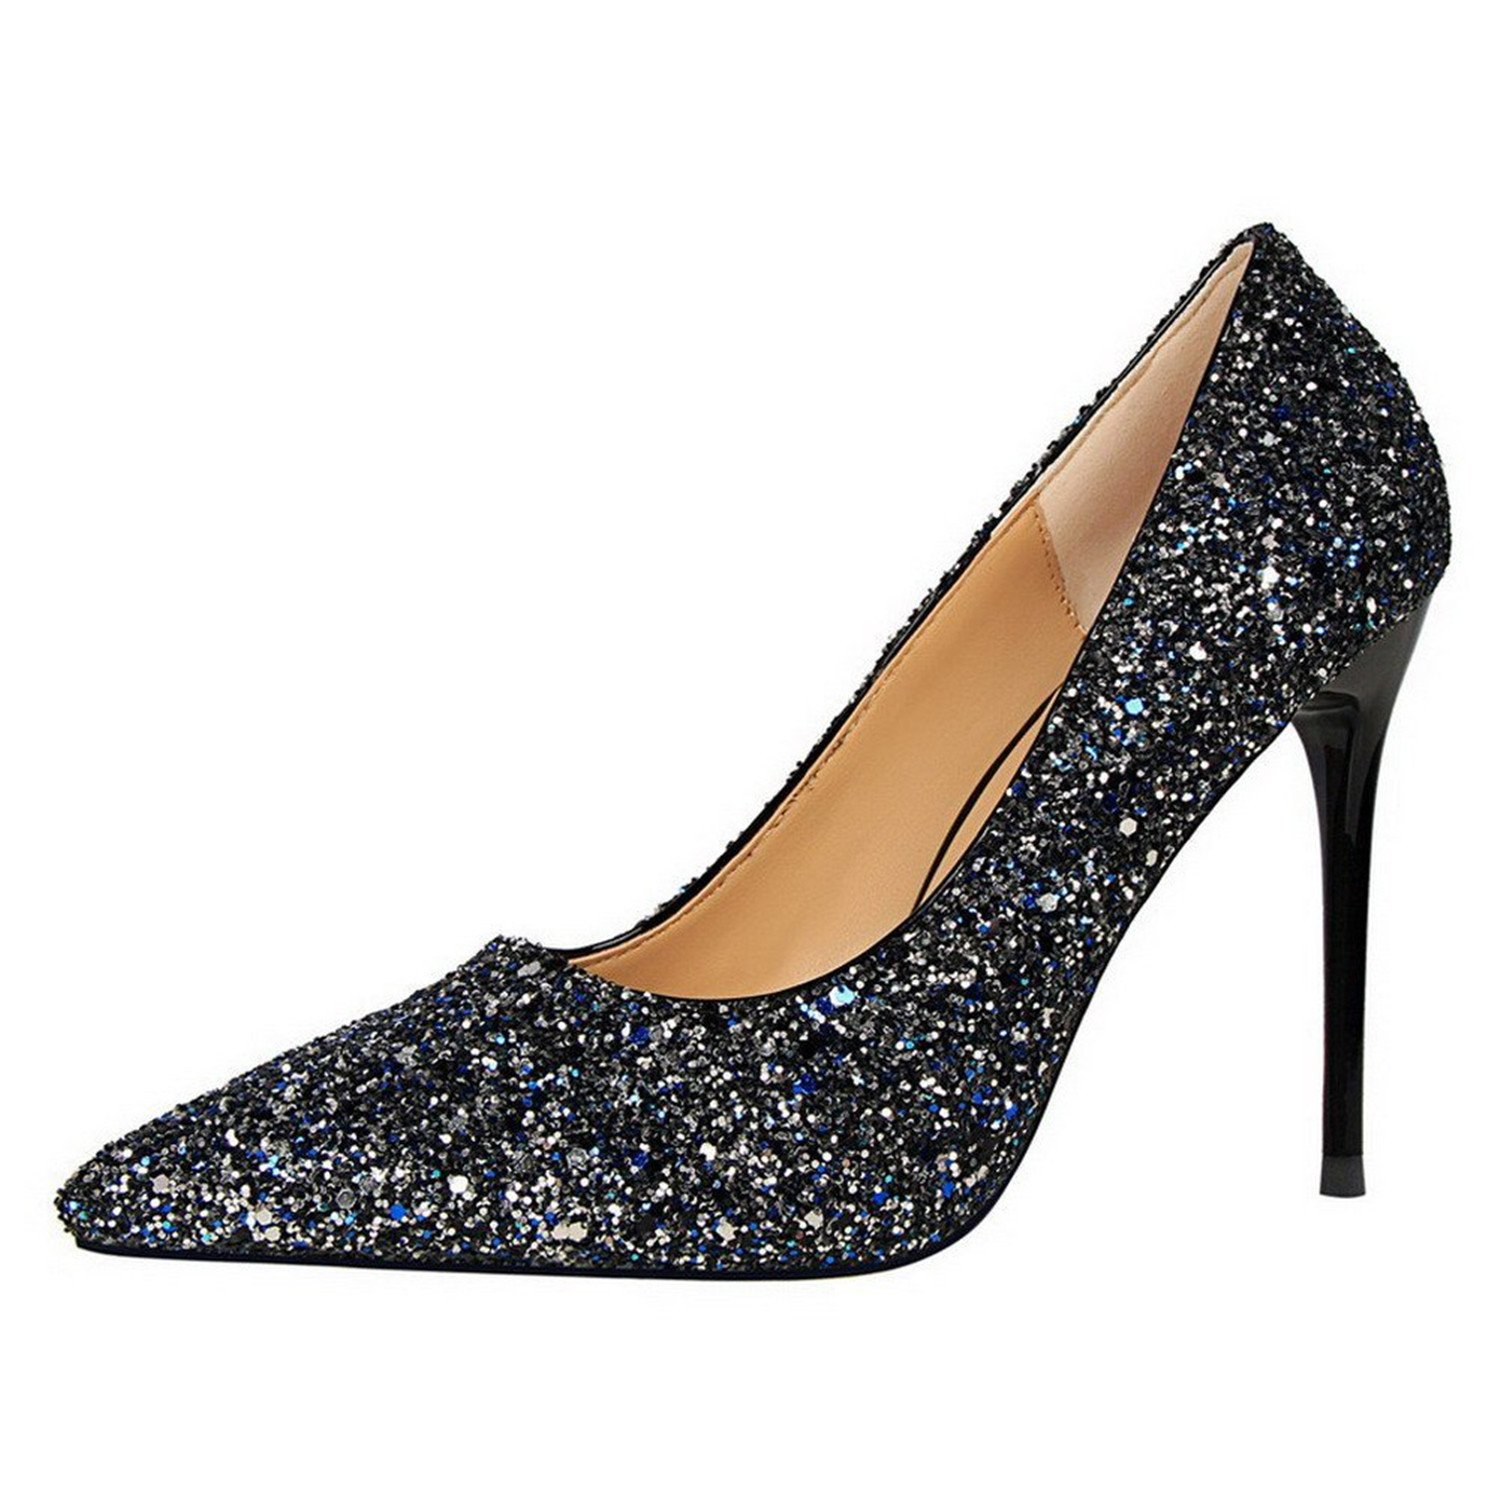 Three Second Fashion Simple Womens Solid Kitten-Heels Pointed-Toe Pull-On Pumps-Shoes with Sequin